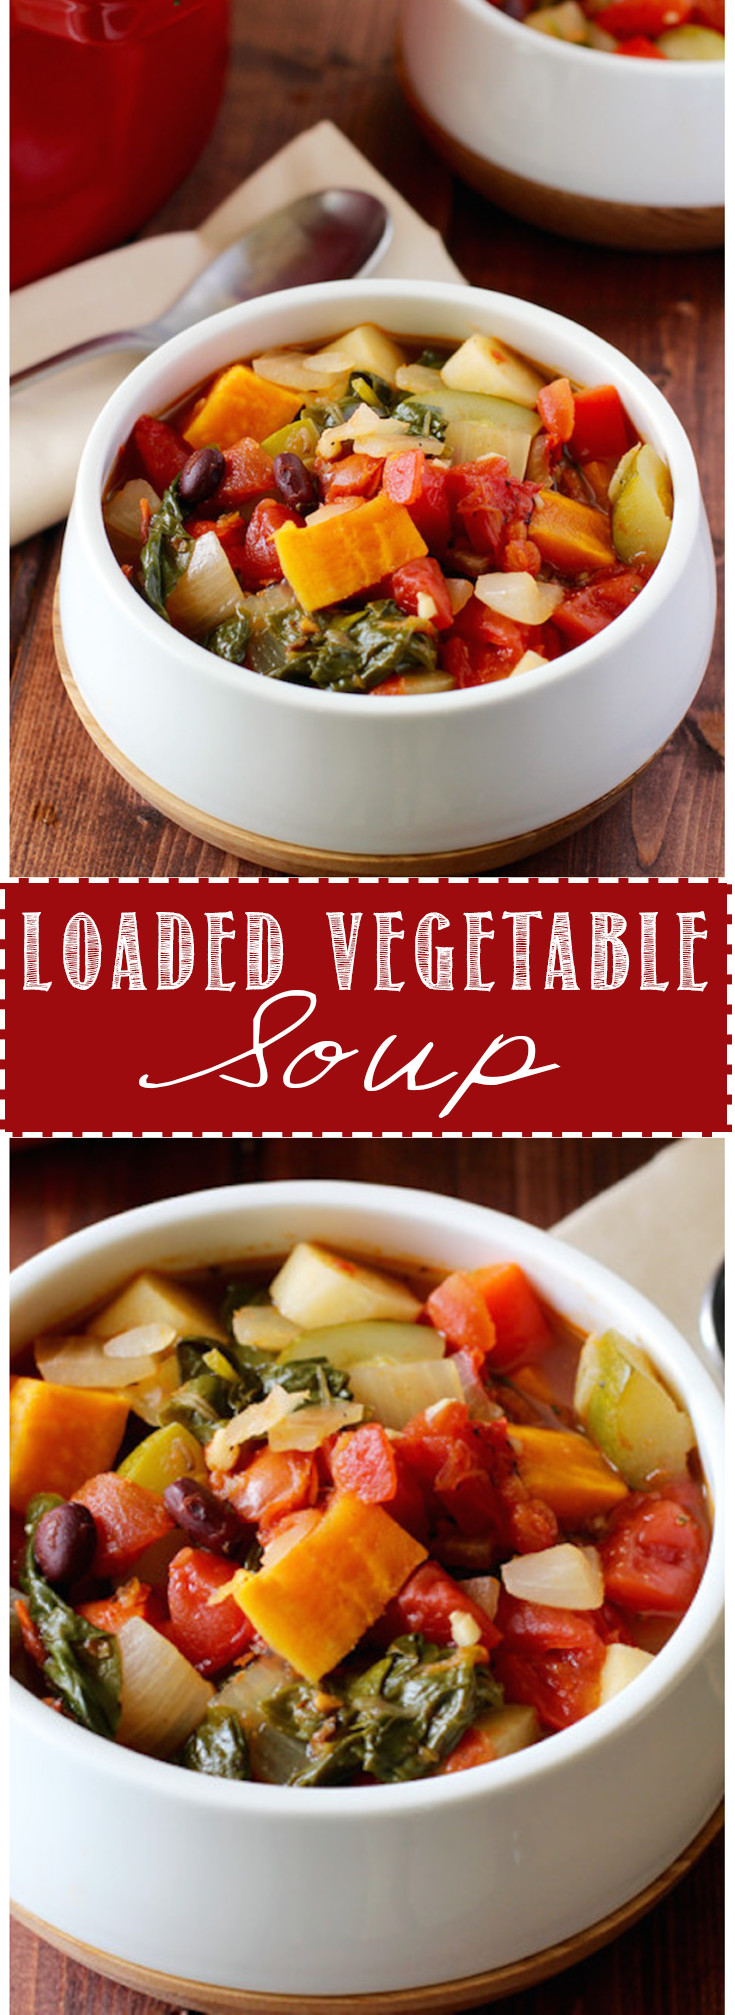 Loaded vegetable soup is simple, healthy, and delicious!!